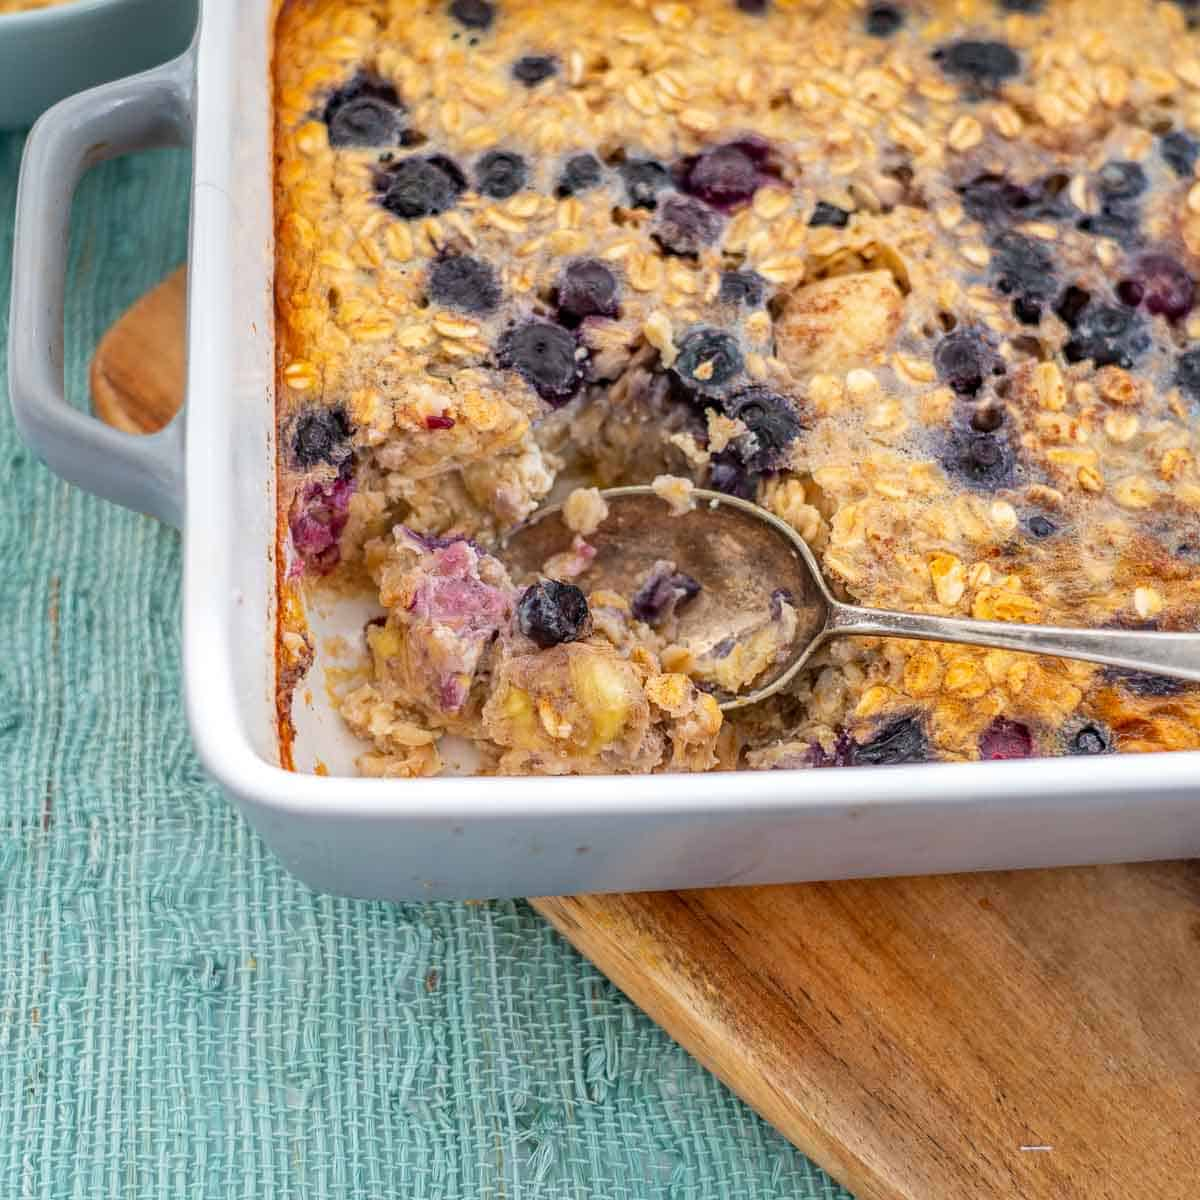 Baked oats topped with blueberries in a grey ceramic baking dish.